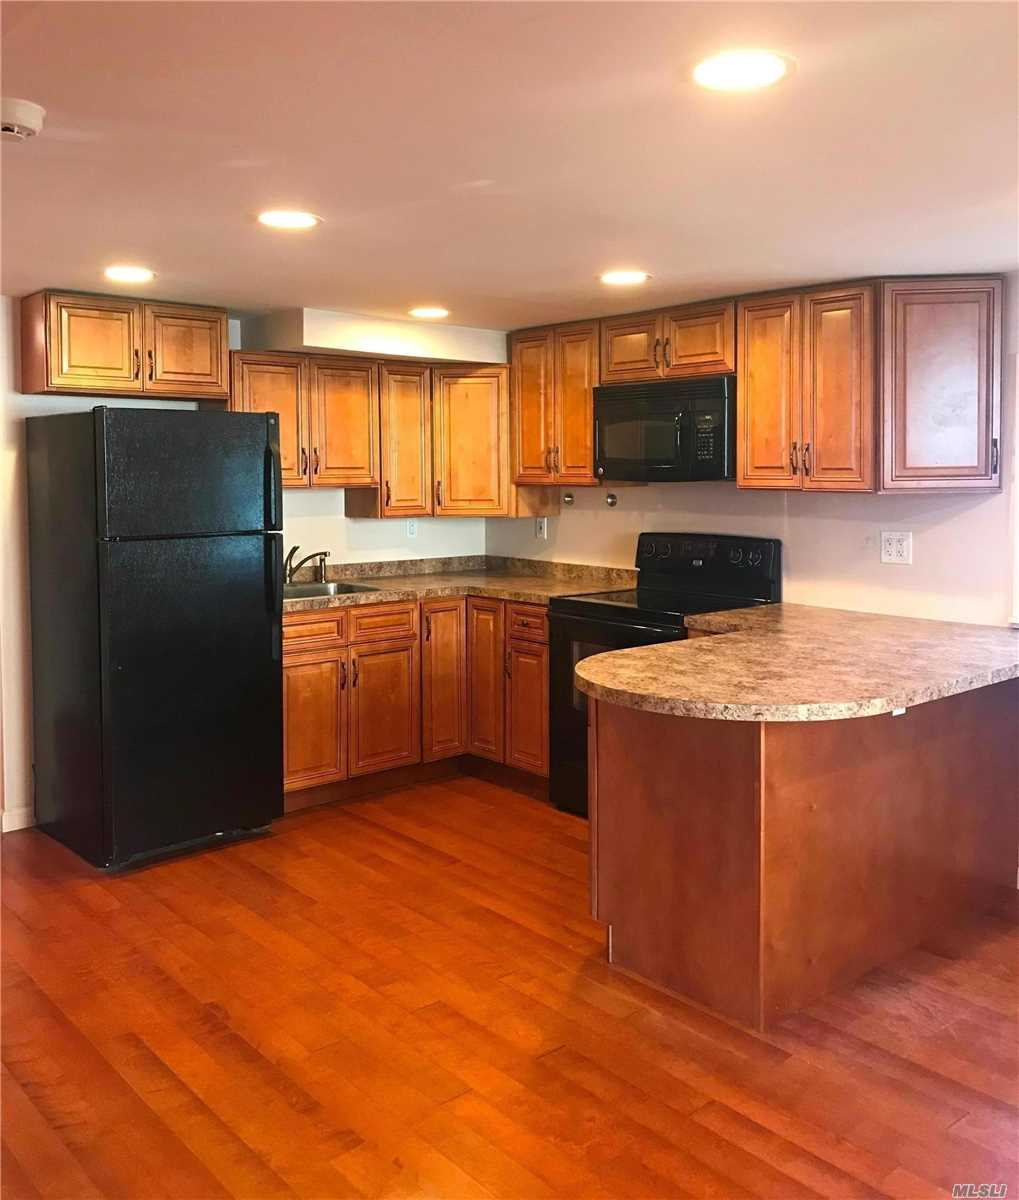 Immaculate 3 room apartment with all utilities included...even cable. Great location, beautiful neighborhood. Close to all!